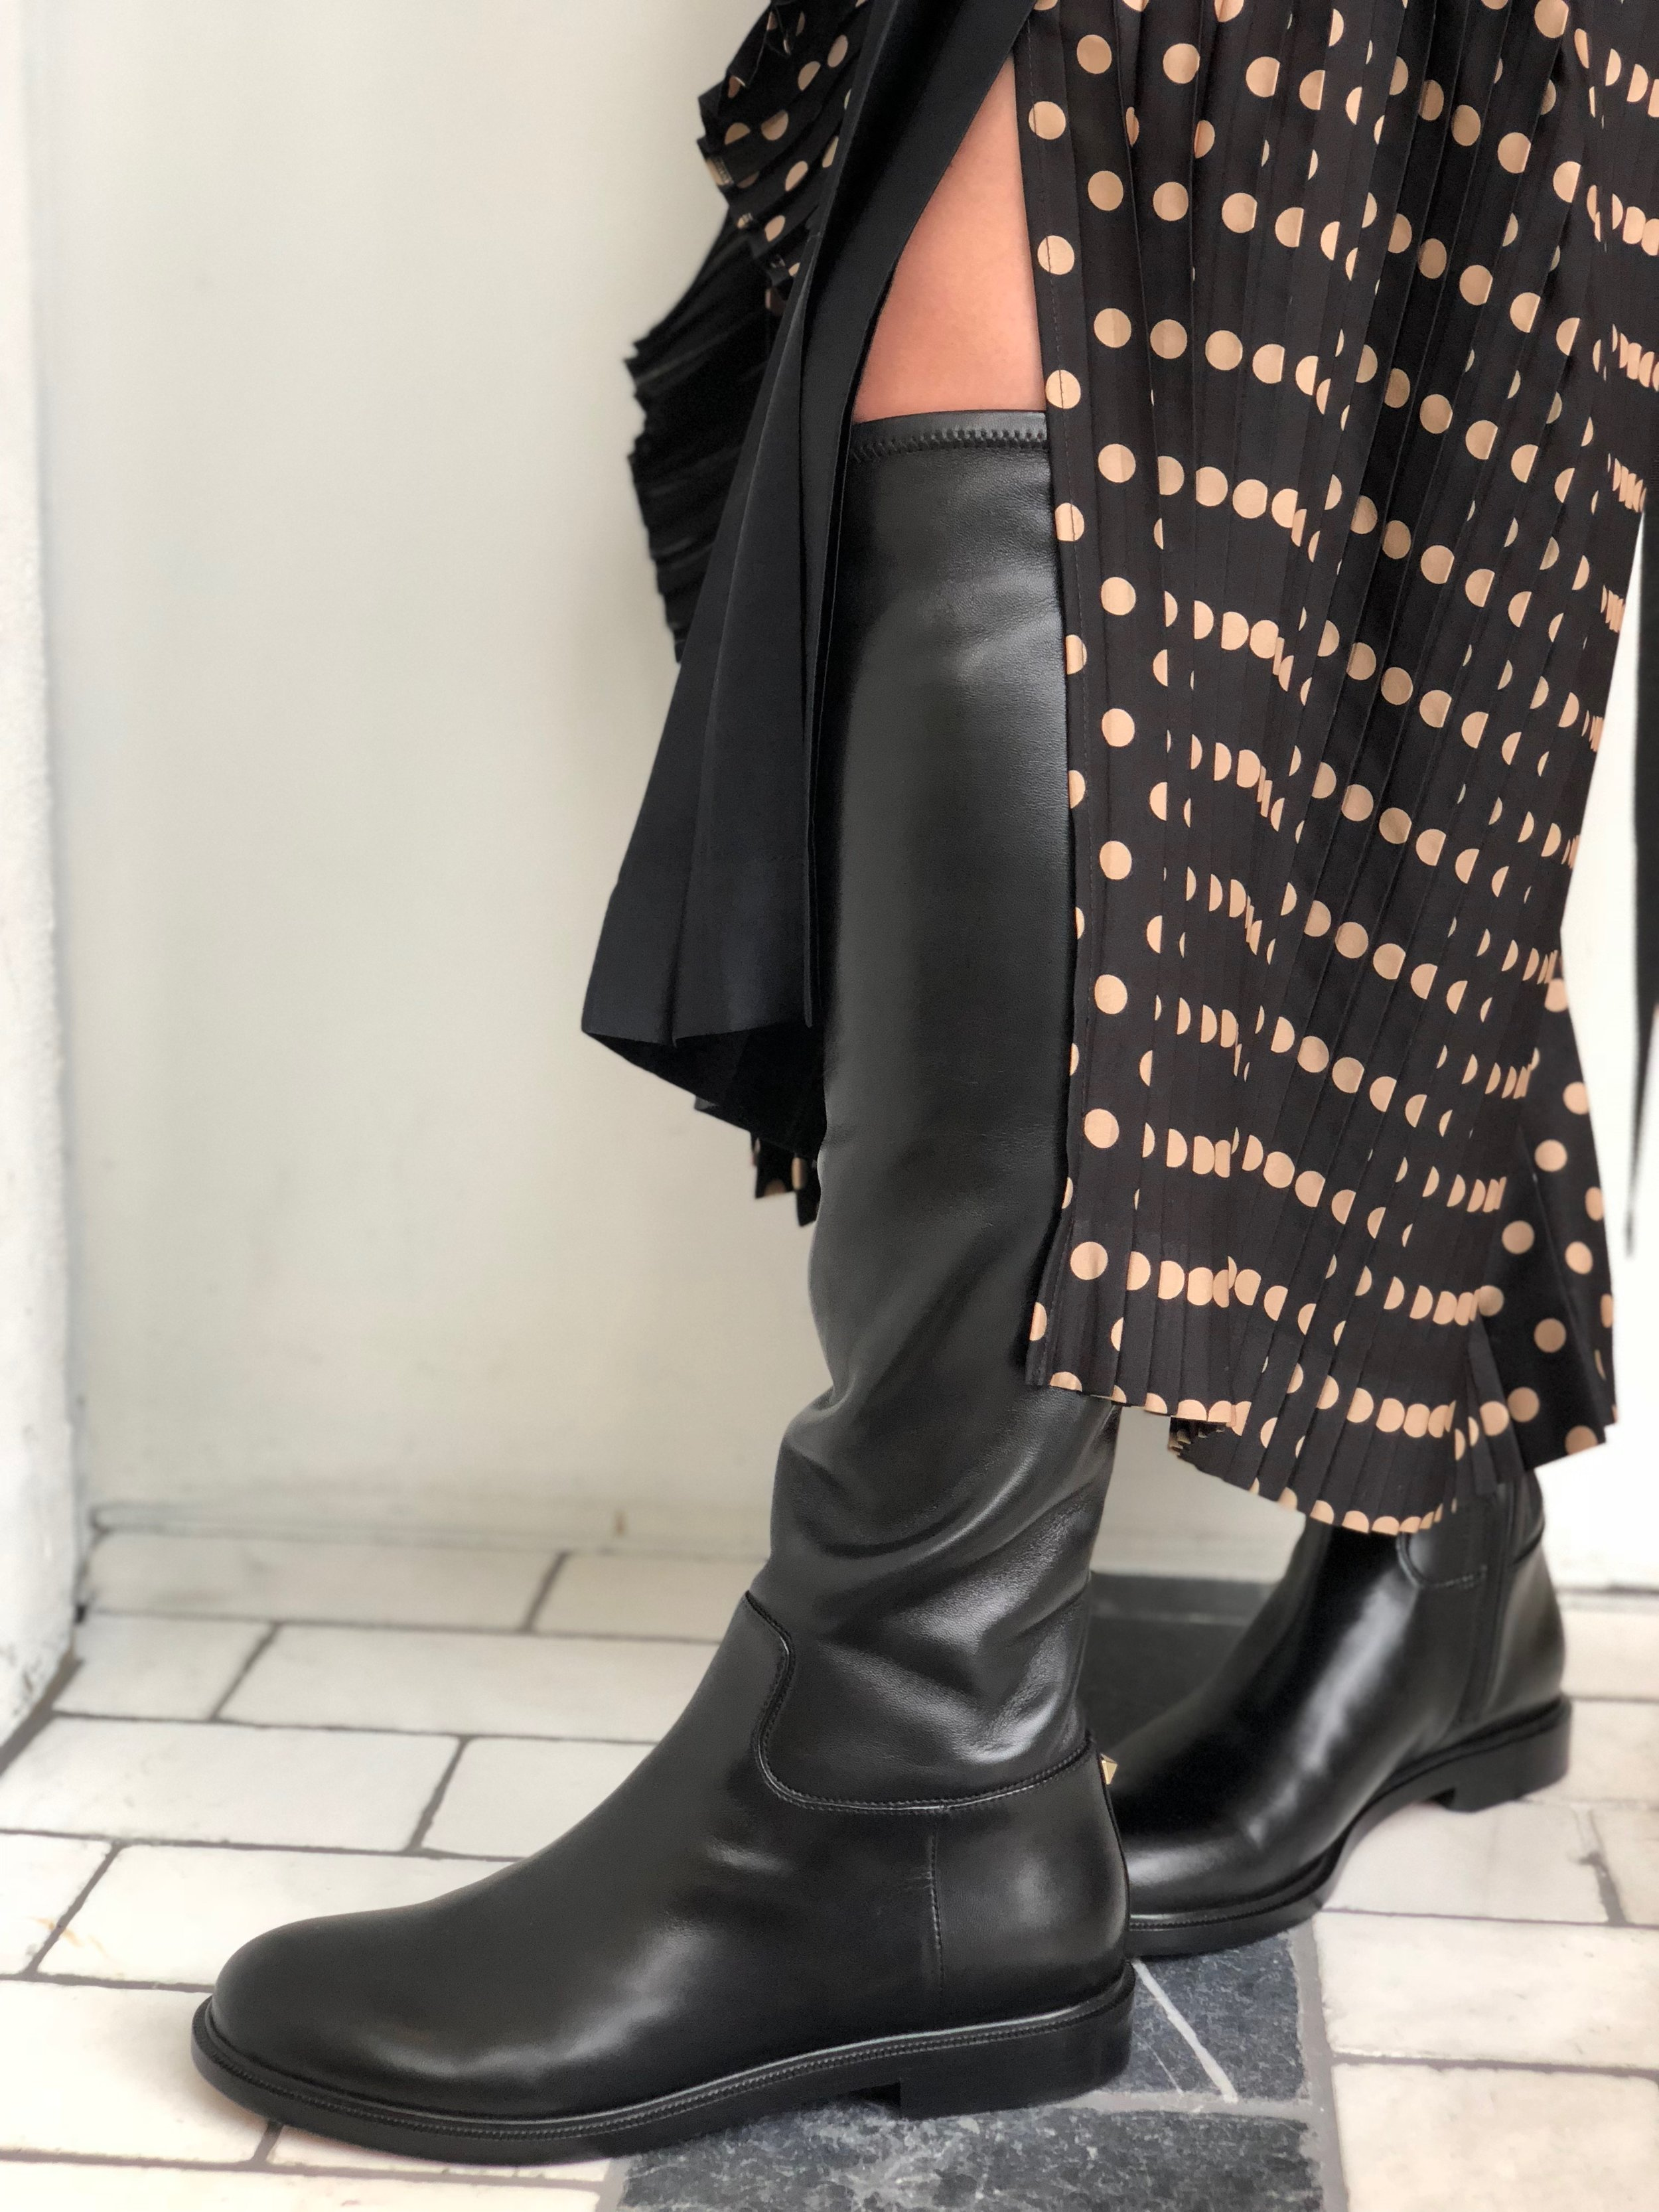 Favorite item #1 - Valentino knee-high boots.